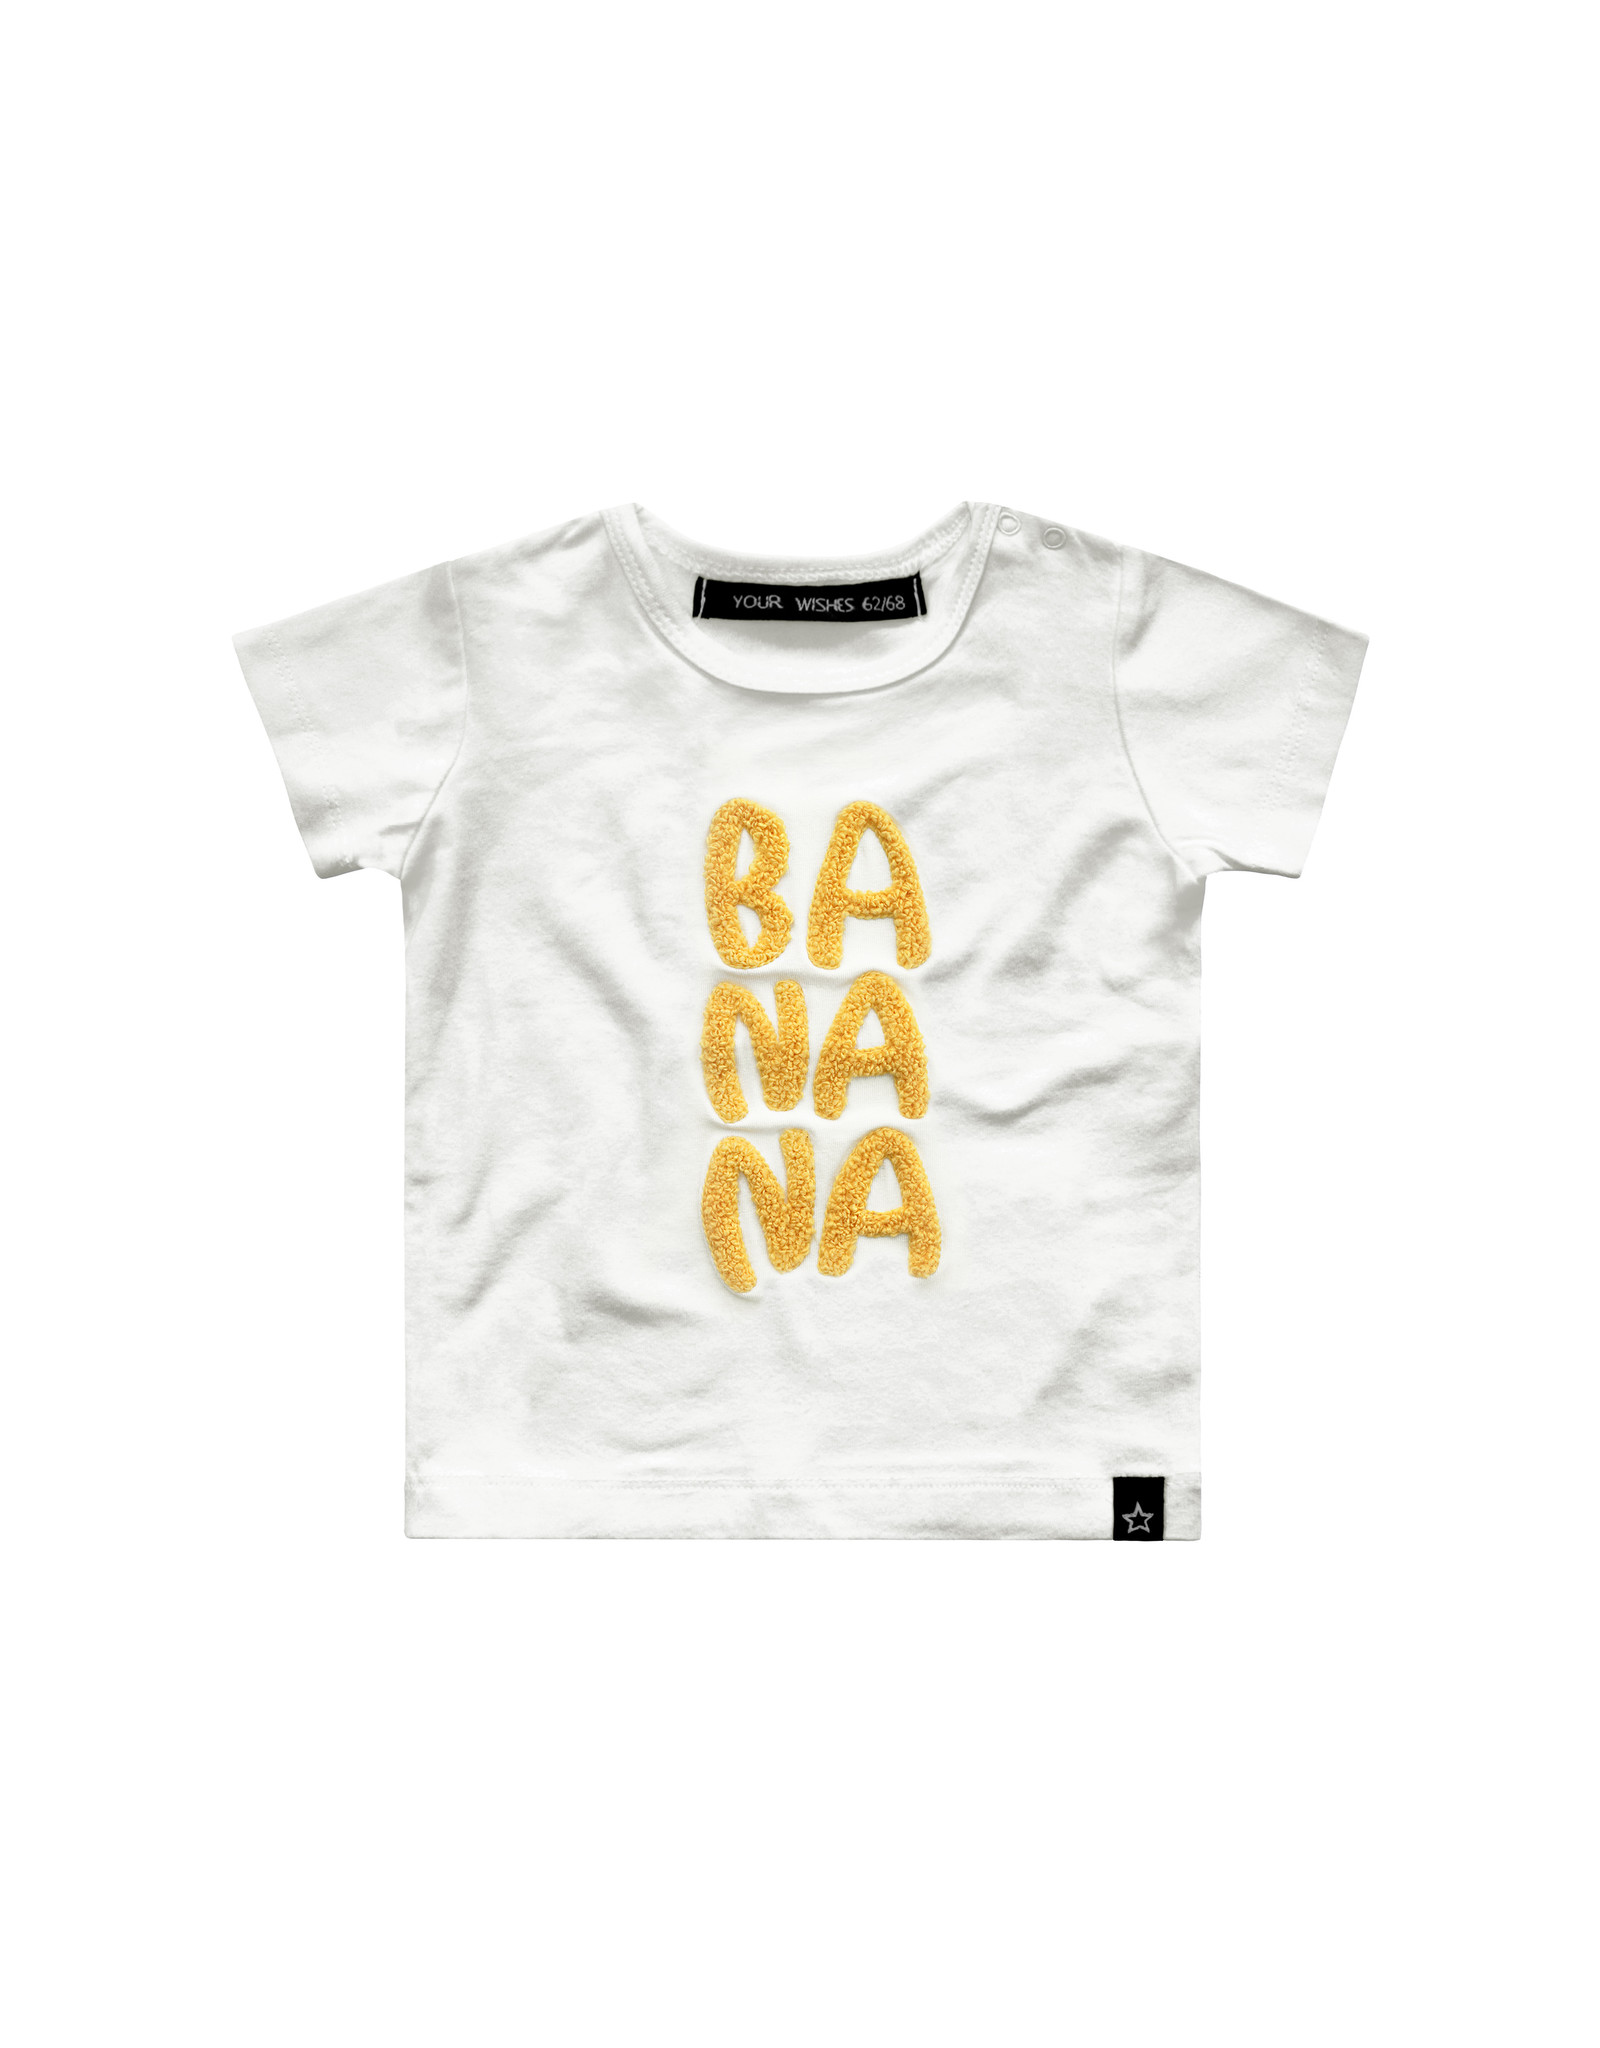 Your Wishes Banana tshirt